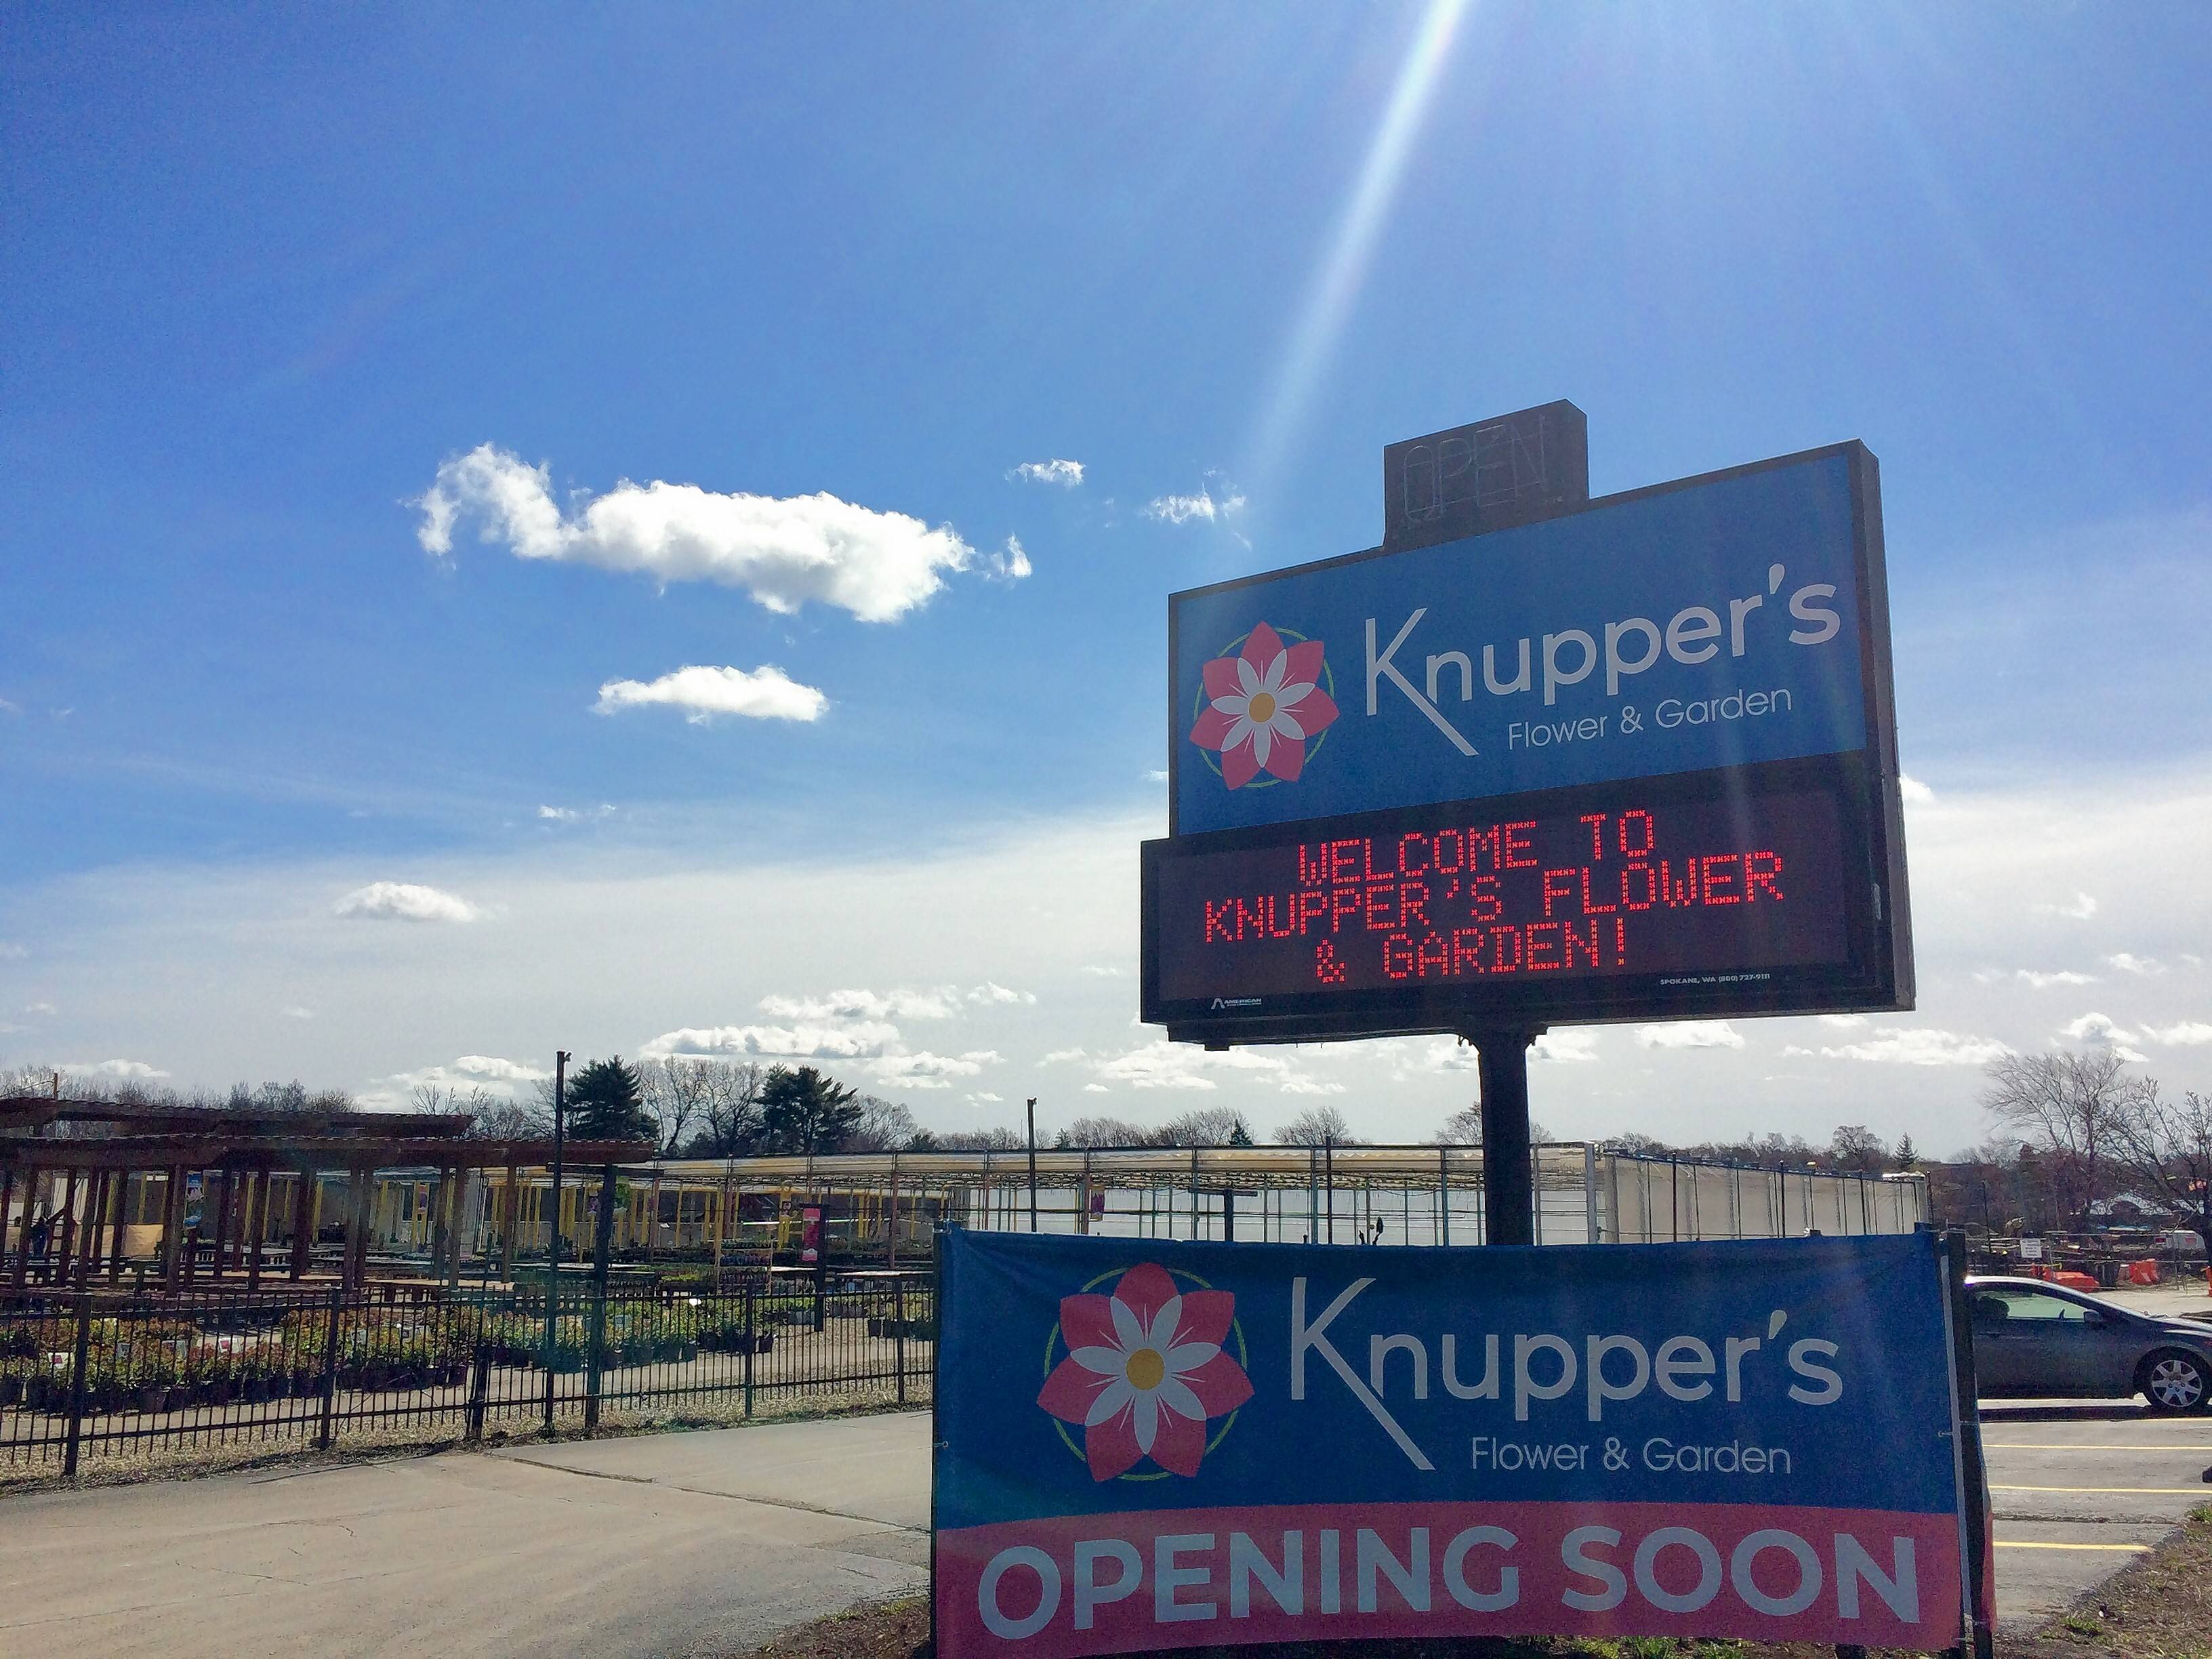 This is a new sign off Rand Road in Palatine for Knupper's Flower & Garden opening this week. It's on the same site as Knupper Nursery & Landscape, which closed in June.